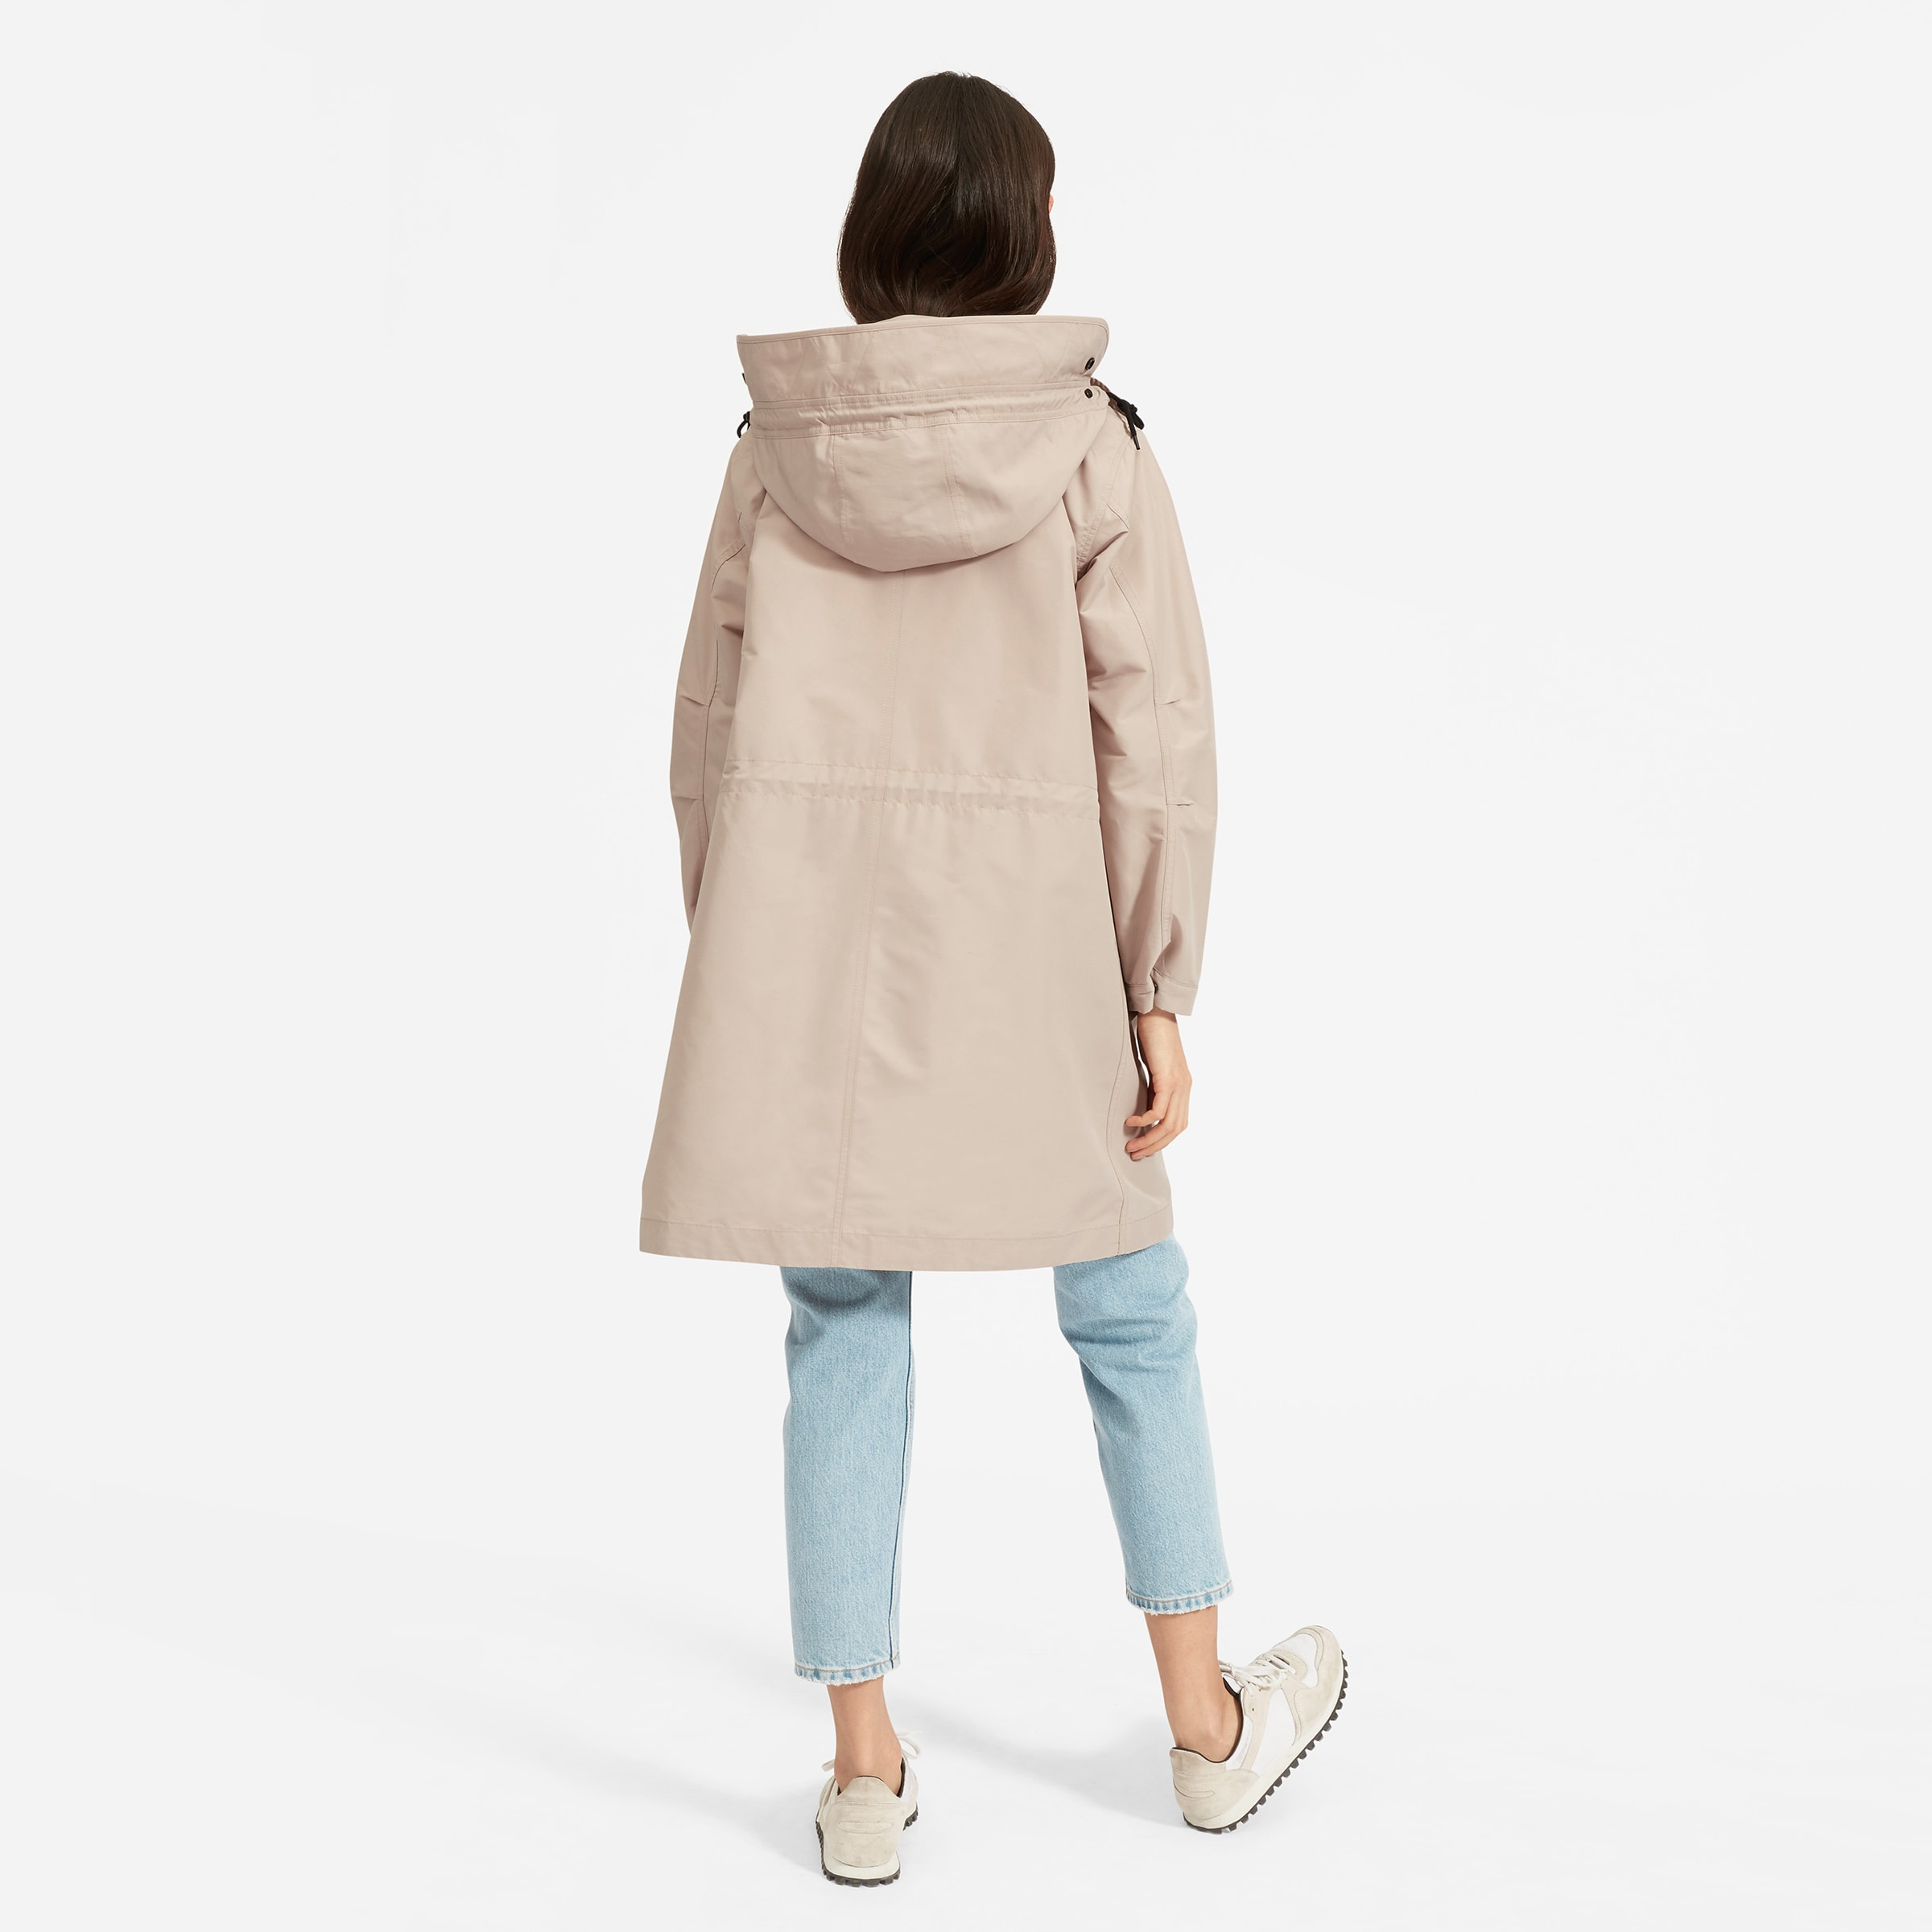 https://res.cloudinary.com/everlane/image/upload/c_fill,dpr_2.0,f_auto,h_1200,q_auto,w_1200/v1/i/5d4dafdc_721d.jpg